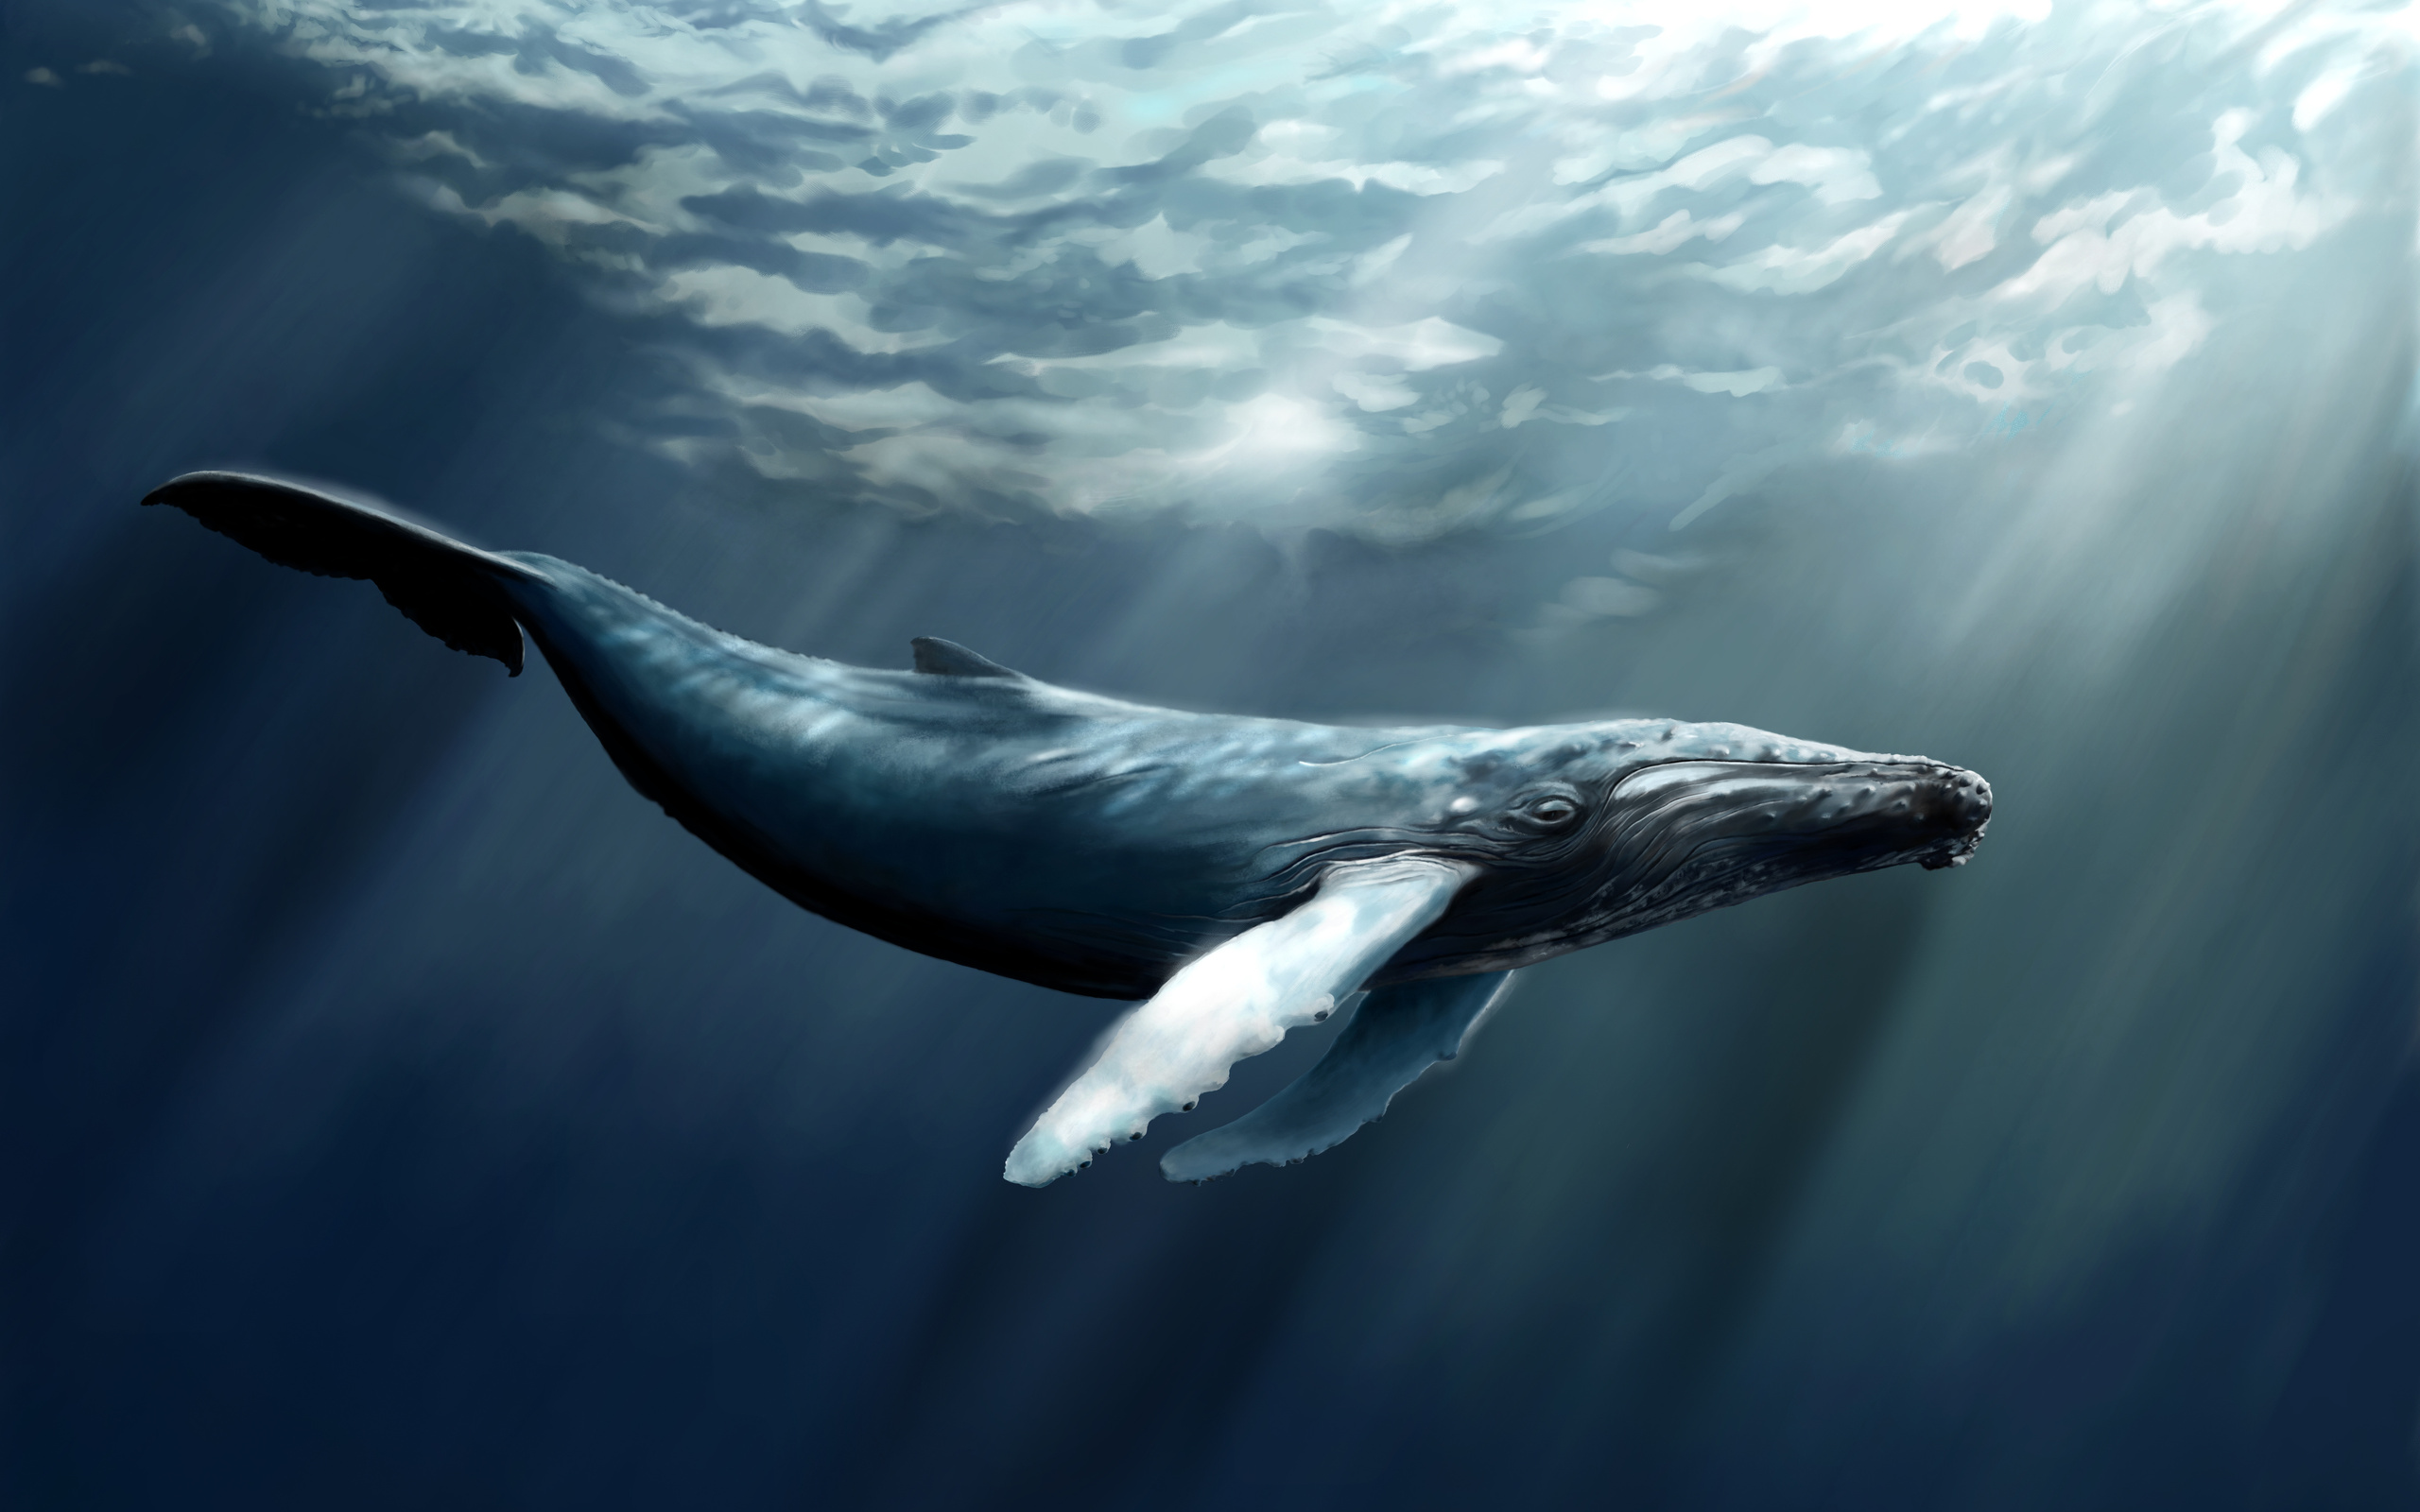 Whale Computer Wallpapers Desktop Backgrounds 2560x1600 ID412635 2560x1600